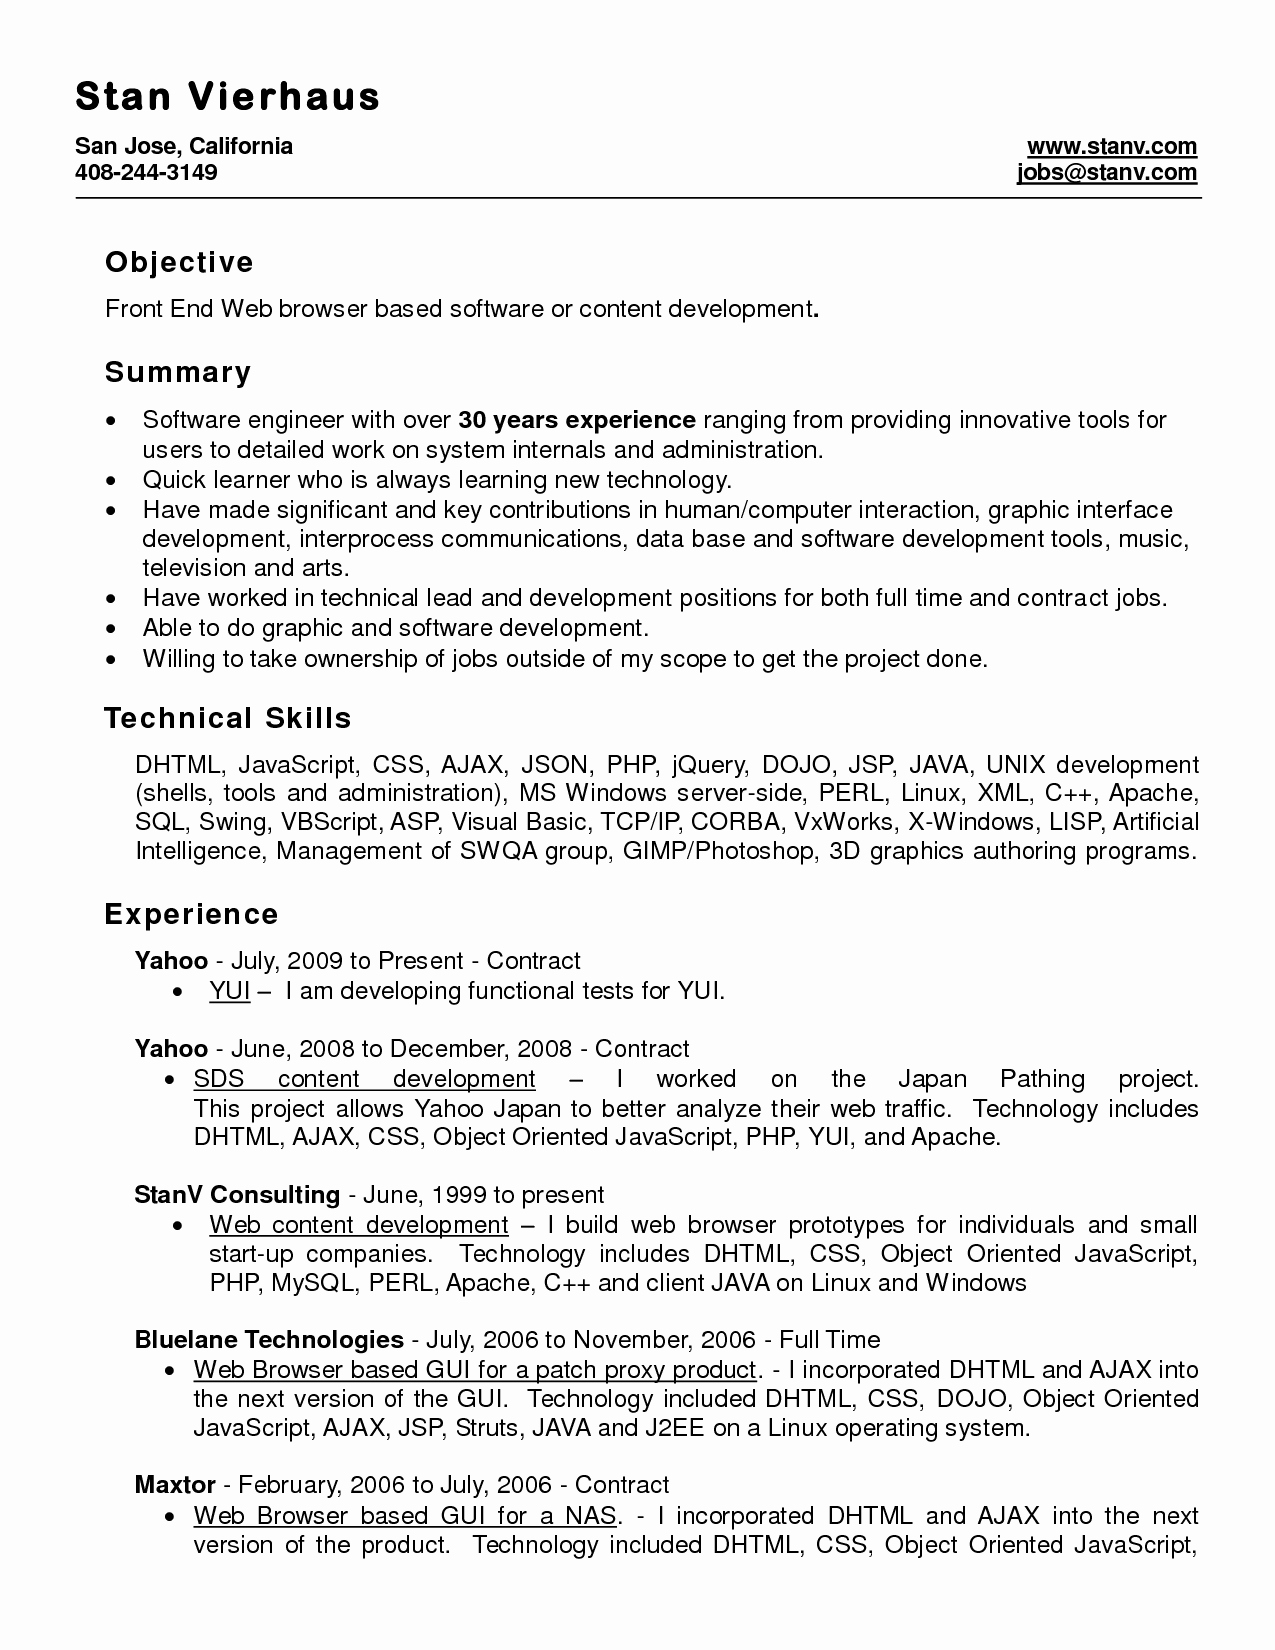 Resume Examples How to Find Templates Microsoft Word